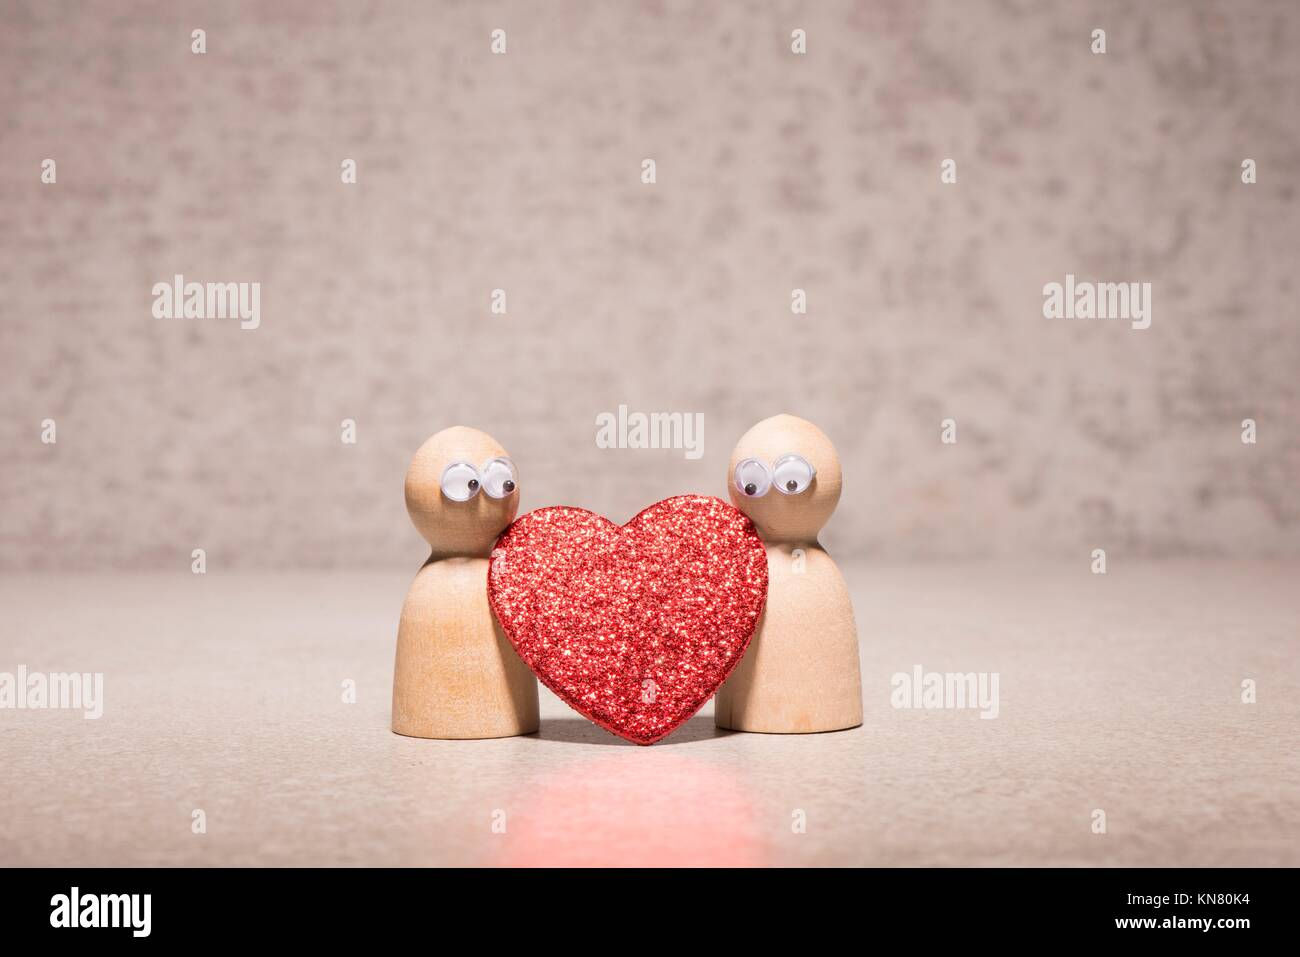 Couple holding red heart. Wooden figures with cute and funny symbol of love. Concept of romantic feelings, dating - Stock Image